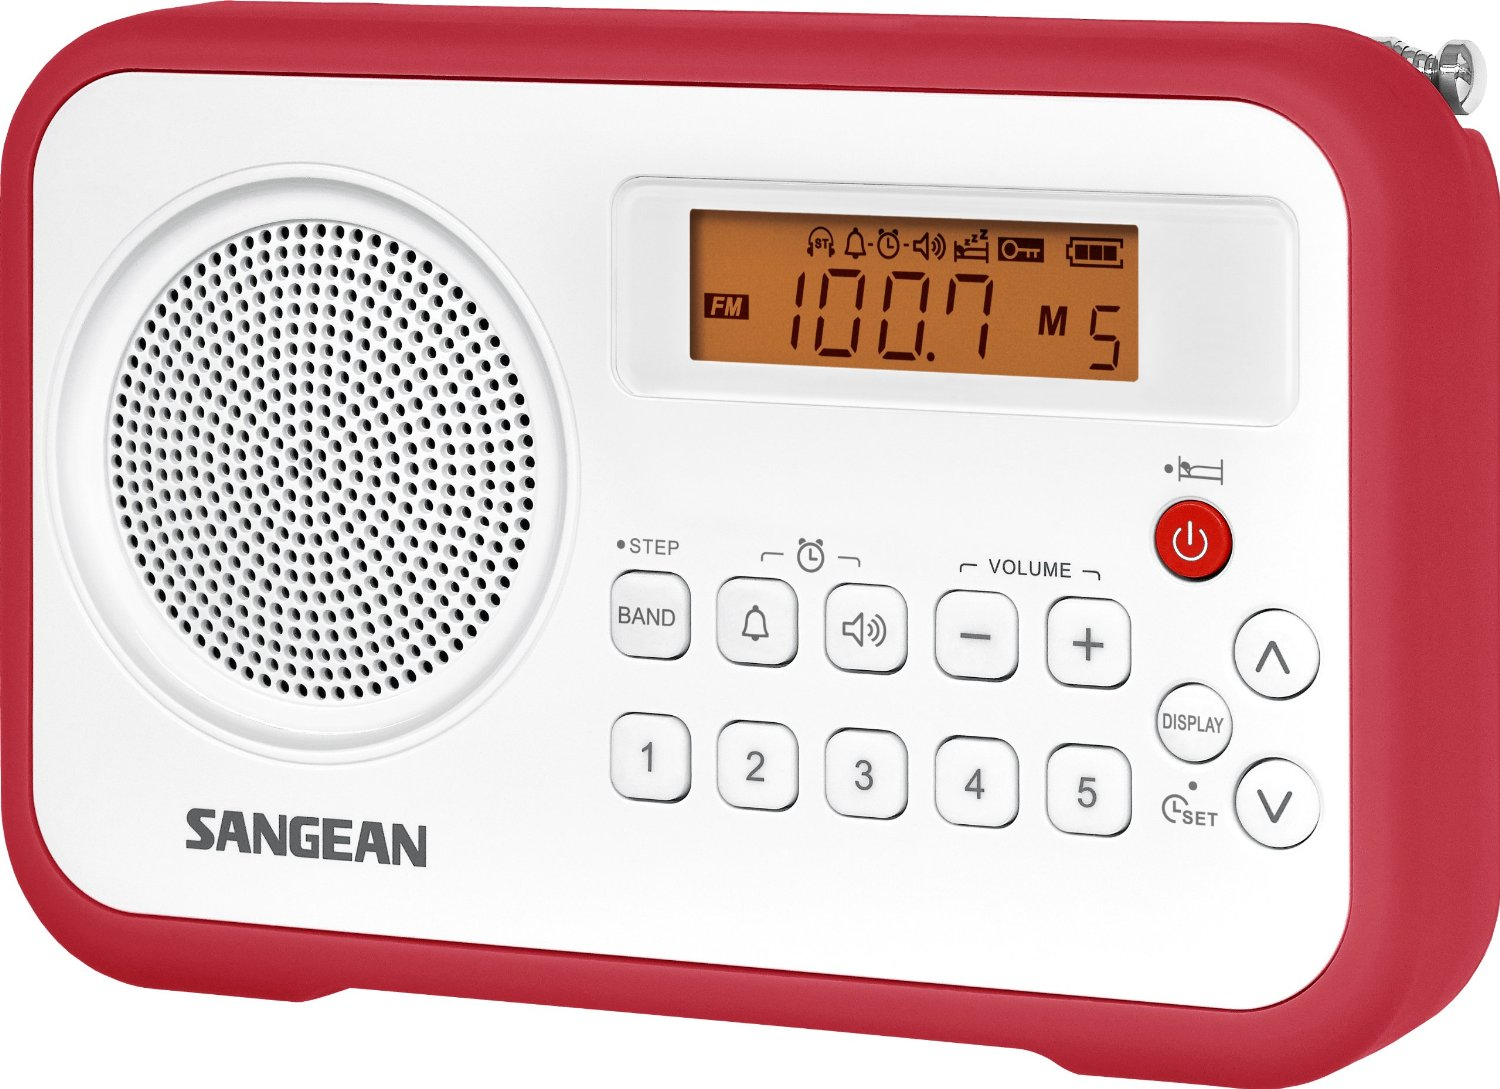 sangean pr d18 dsp am fm digital portable radio radiojayallen. Black Bedroom Furniture Sets. Home Design Ideas